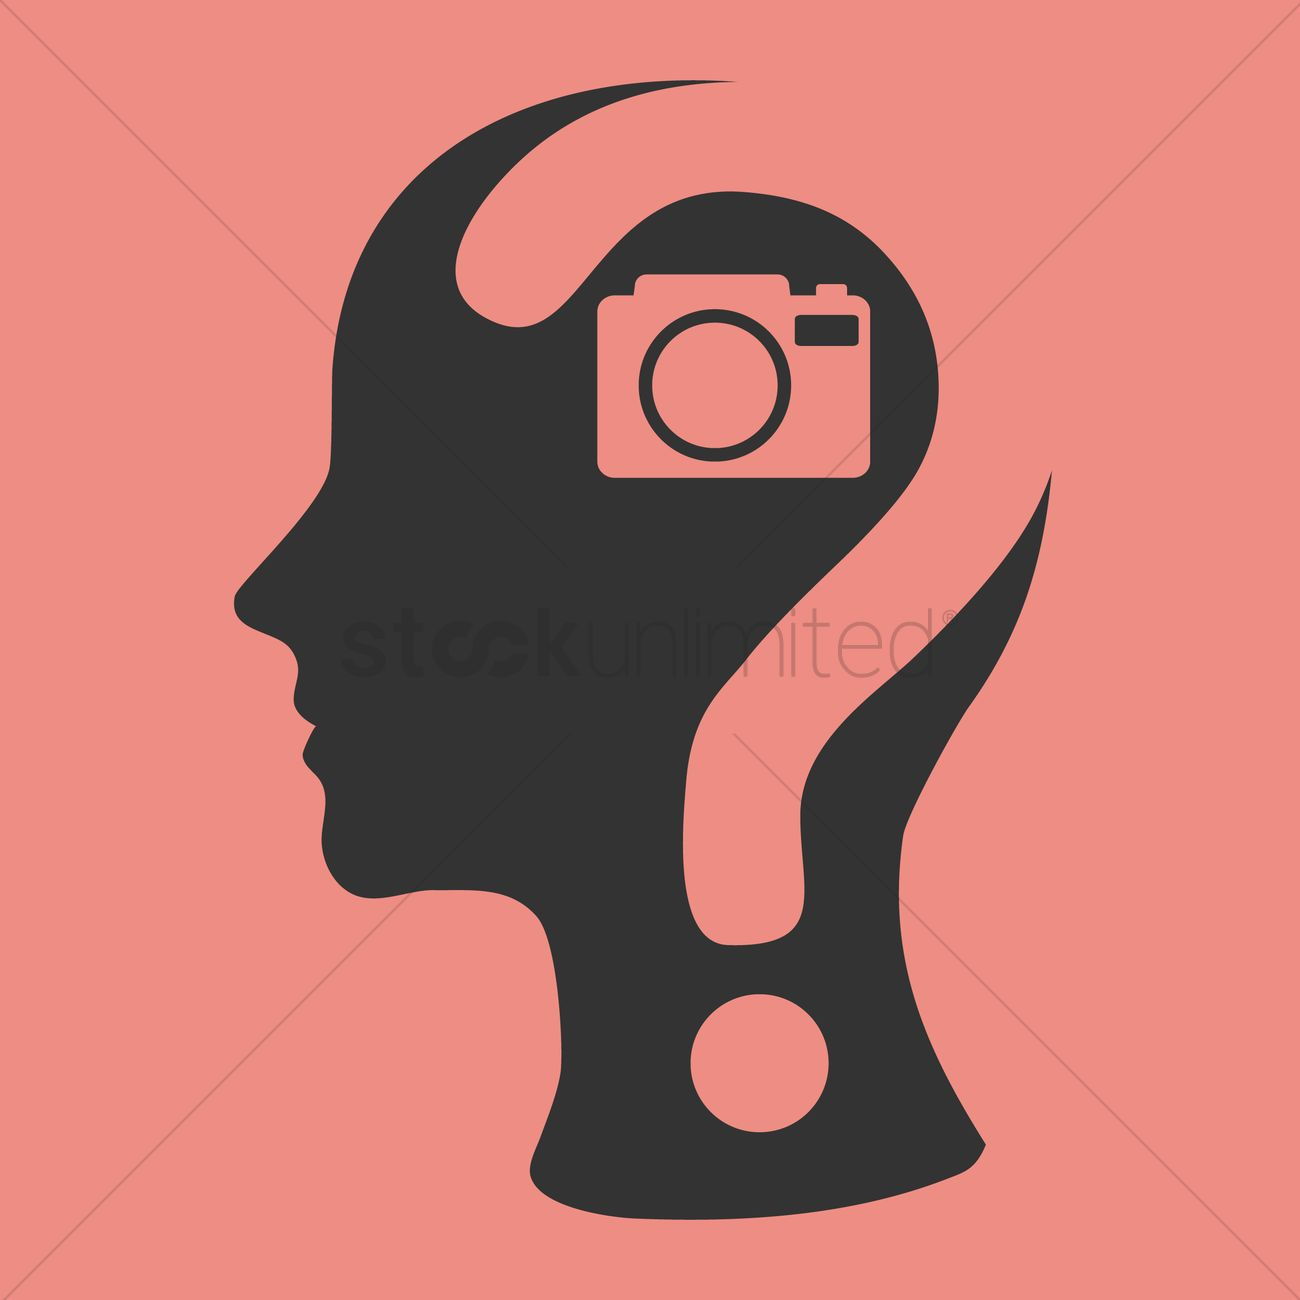 Human head with question mark and a camera Vector Image.